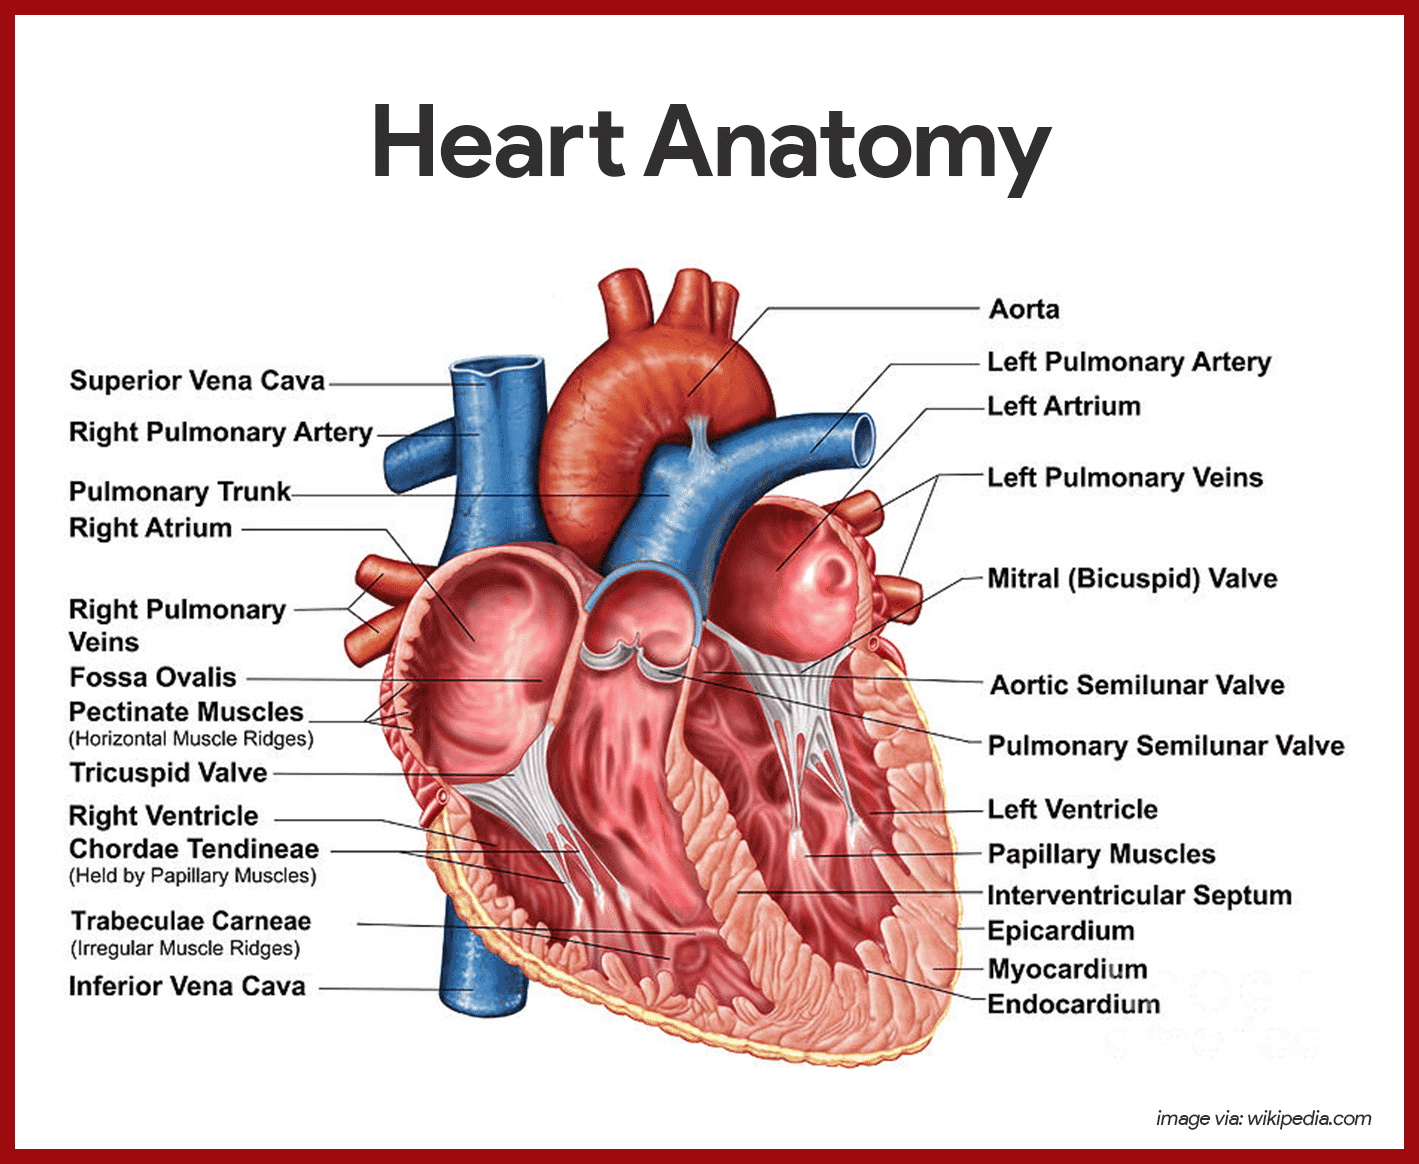 cardiovascular system anatomy and physiology study guide for nurses. Black Bedroom Furniture Sets. Home Design Ideas